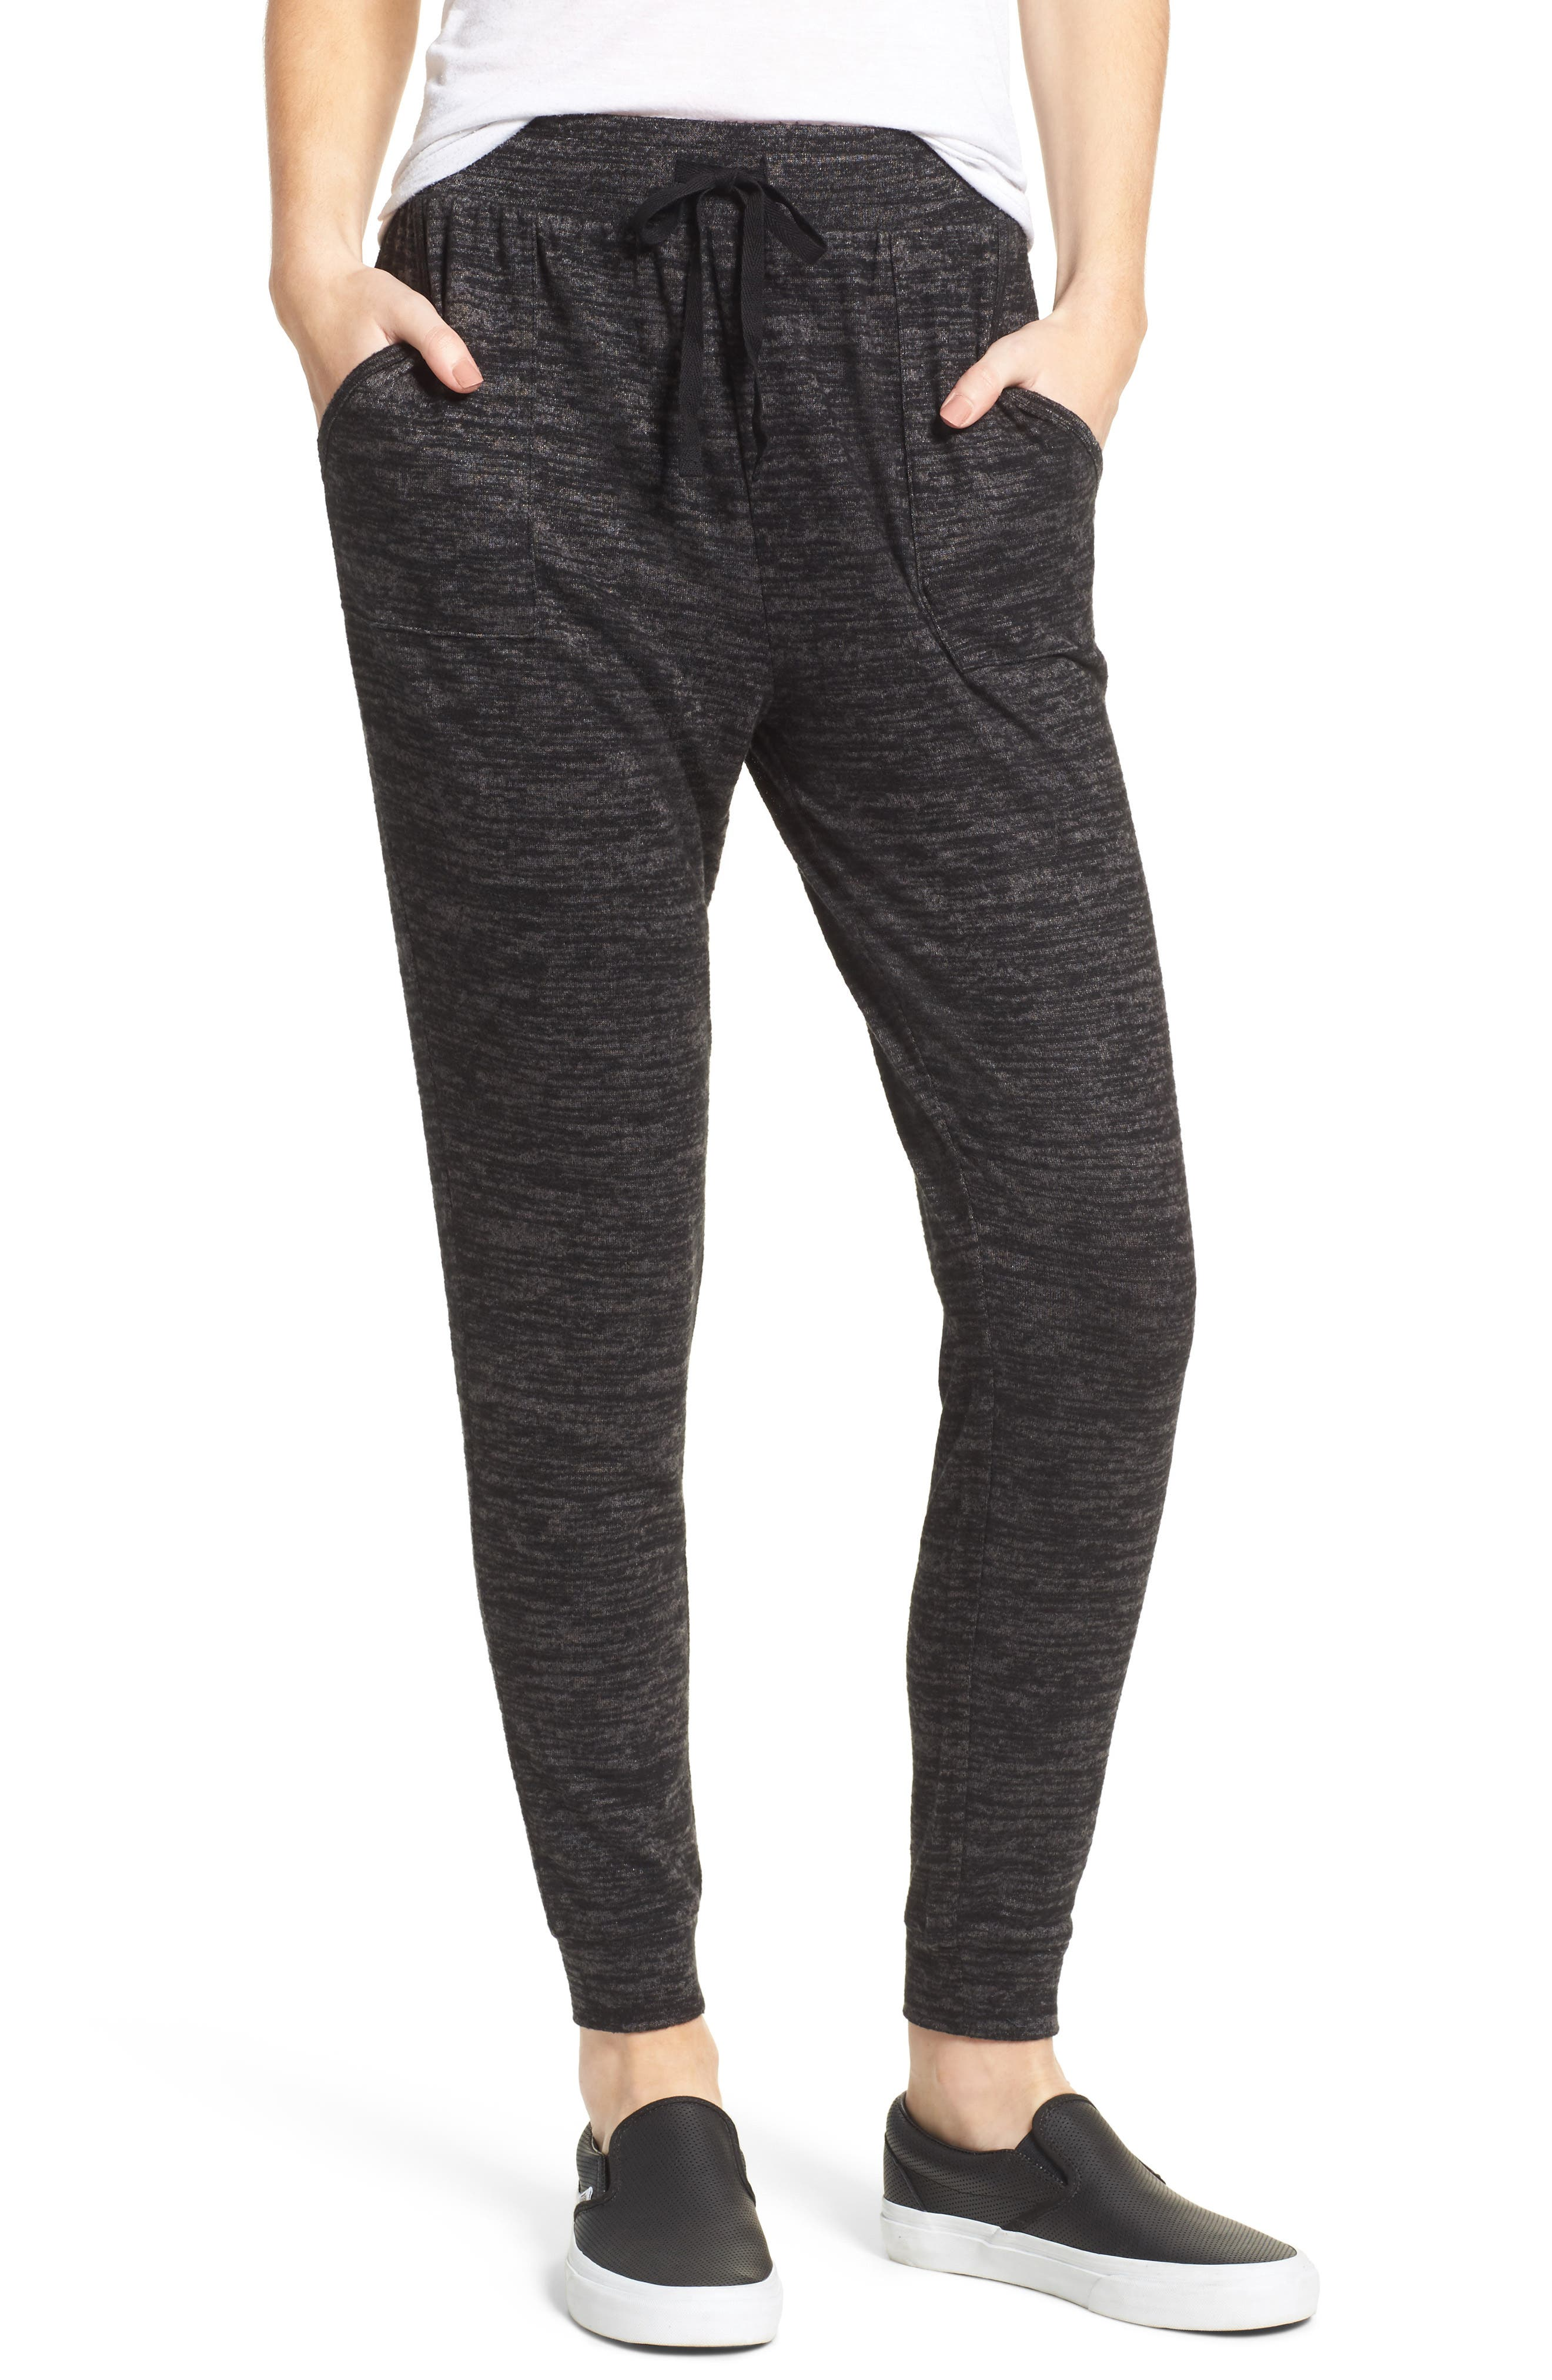 Alternate Image 1 Selected - BP. Stretch Knit Joggers